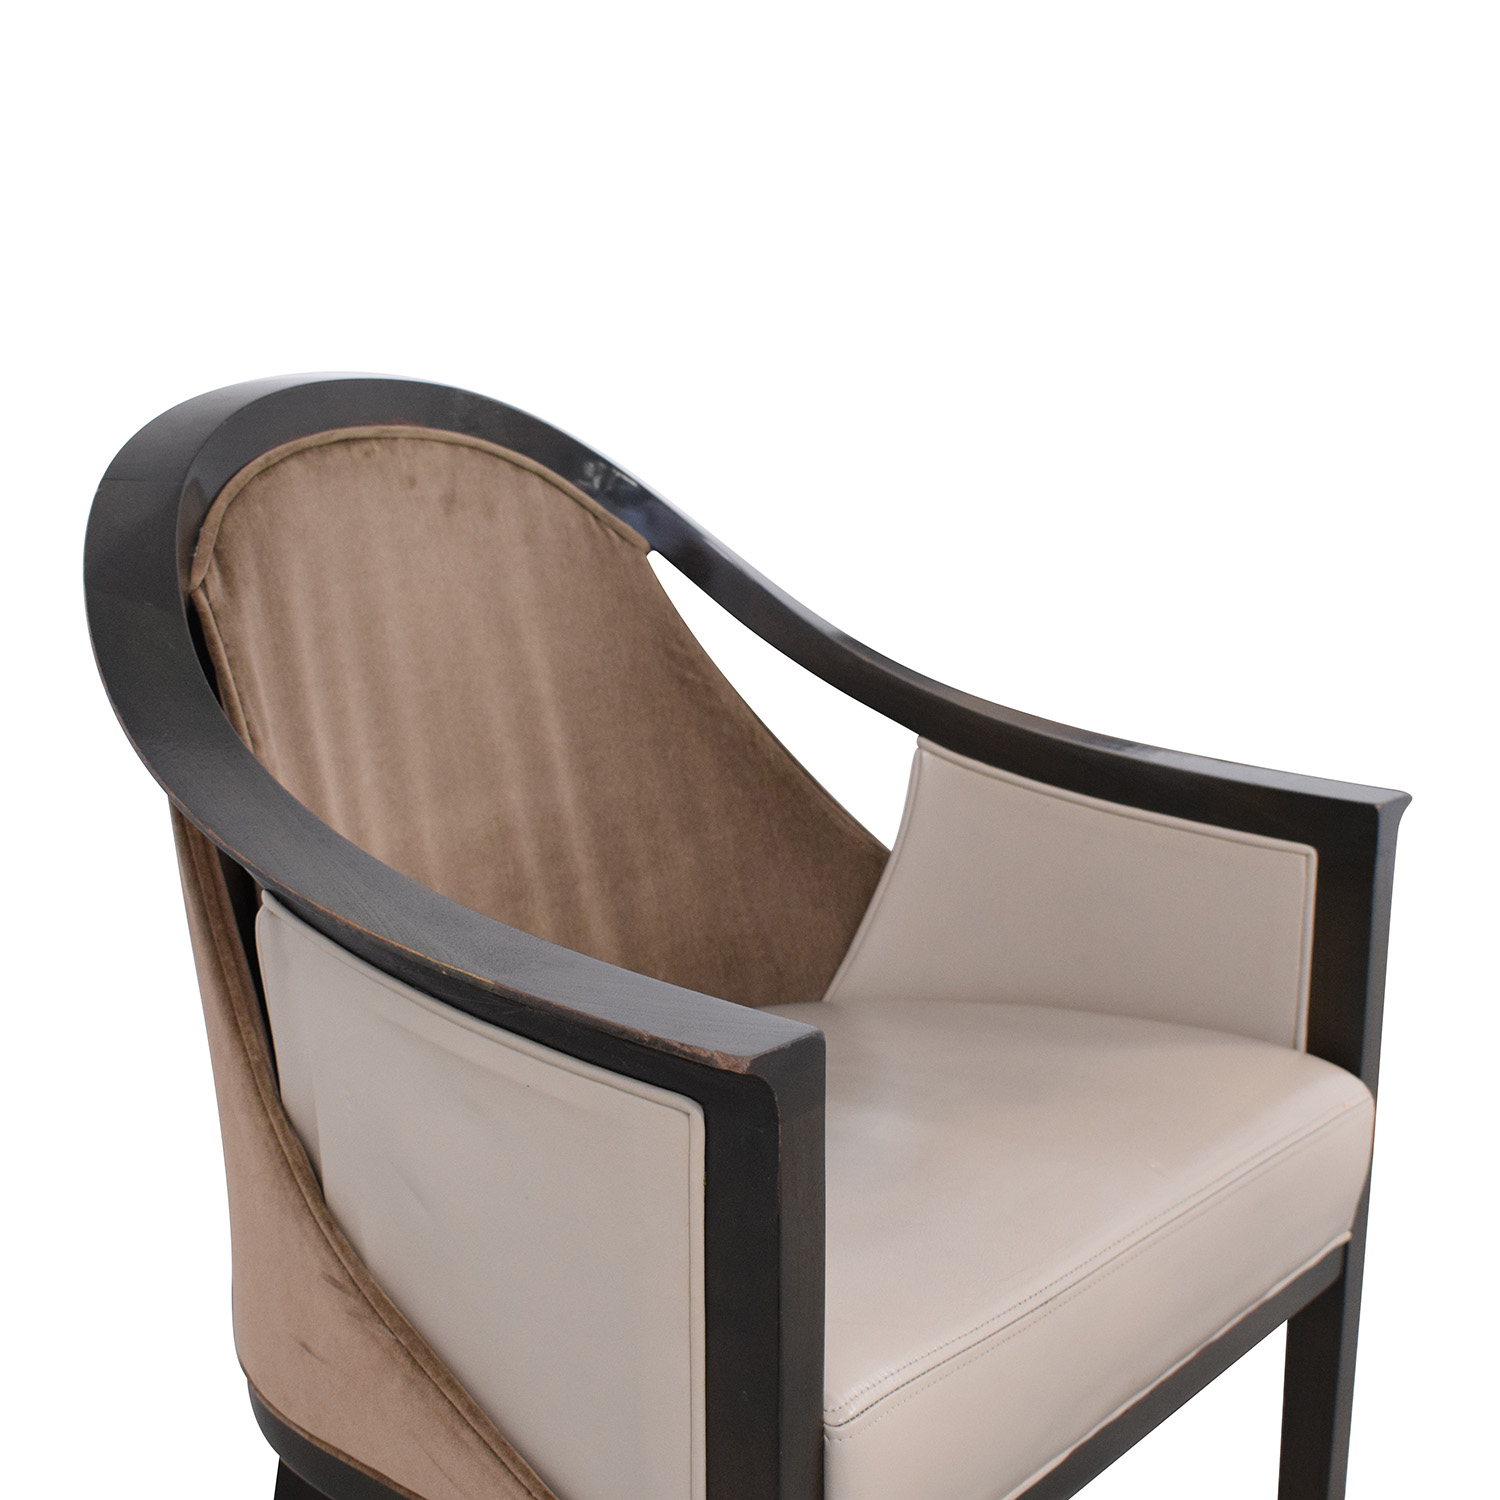 Allied Form Works Allied Works Eleven Madison Park Dining Room Chairs used